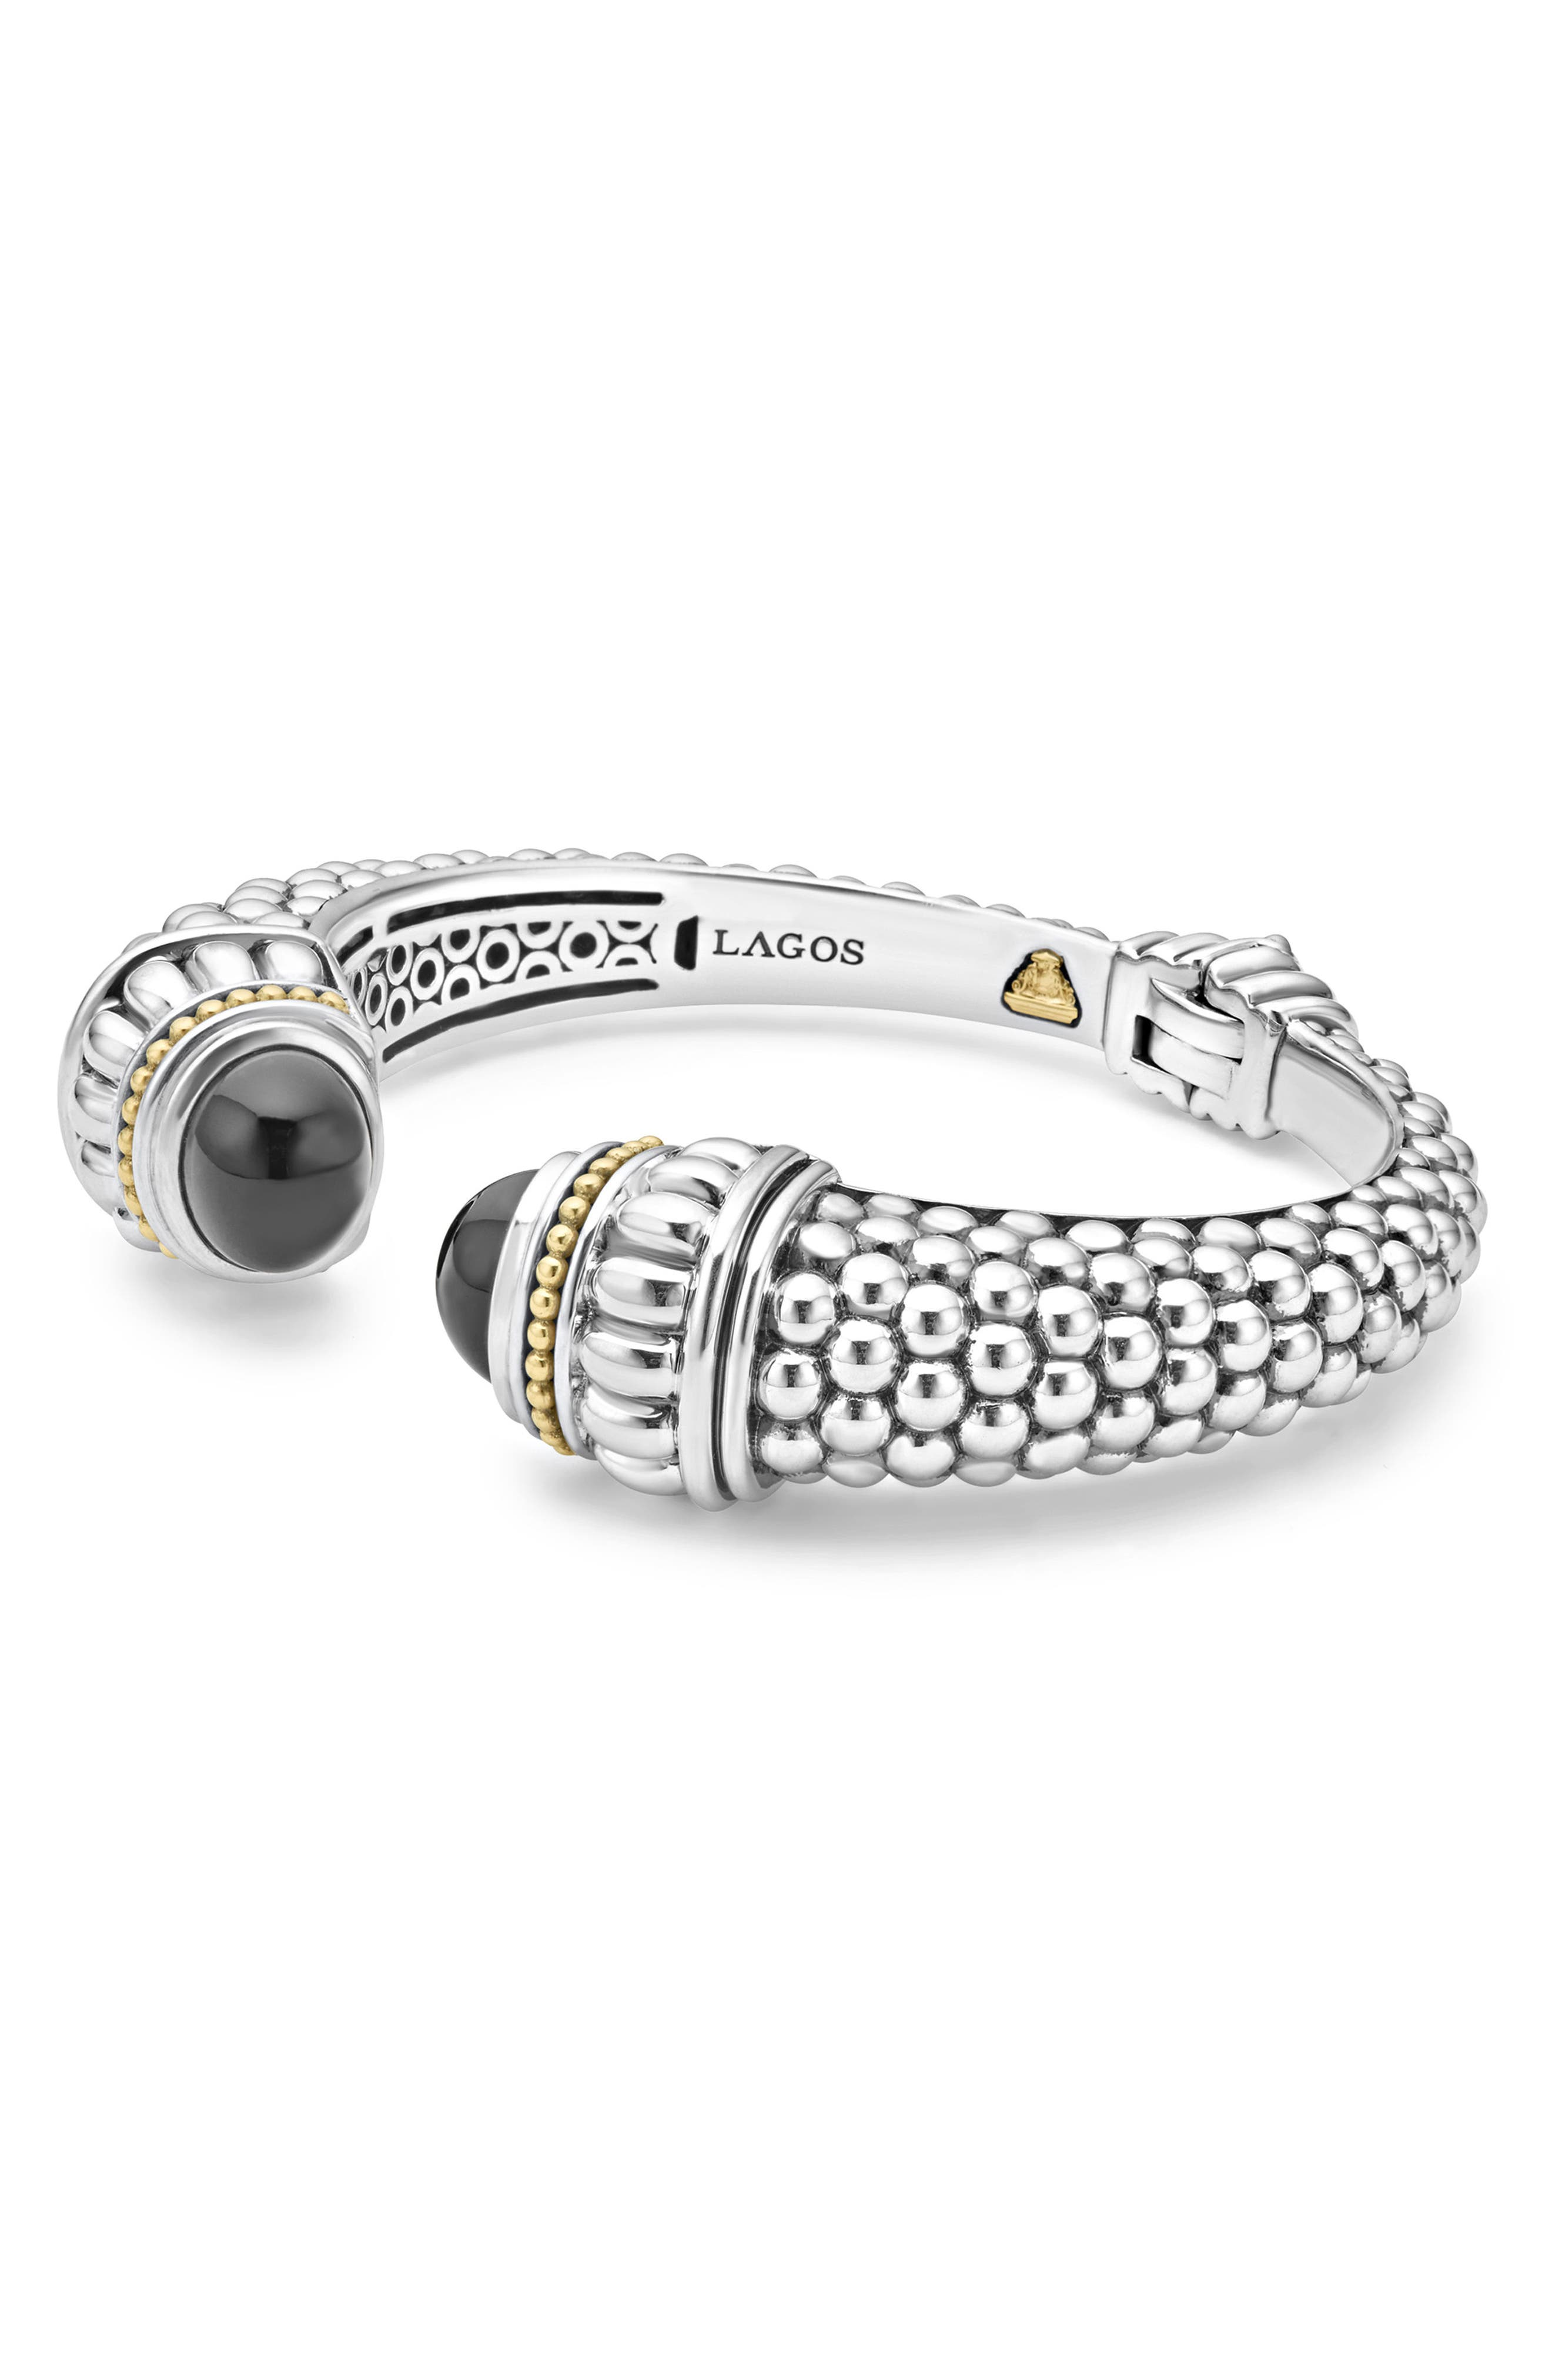 Caviar Color Hinge Wrist Cuff,                             Alternate thumbnail 3, color,                             Black Onyx